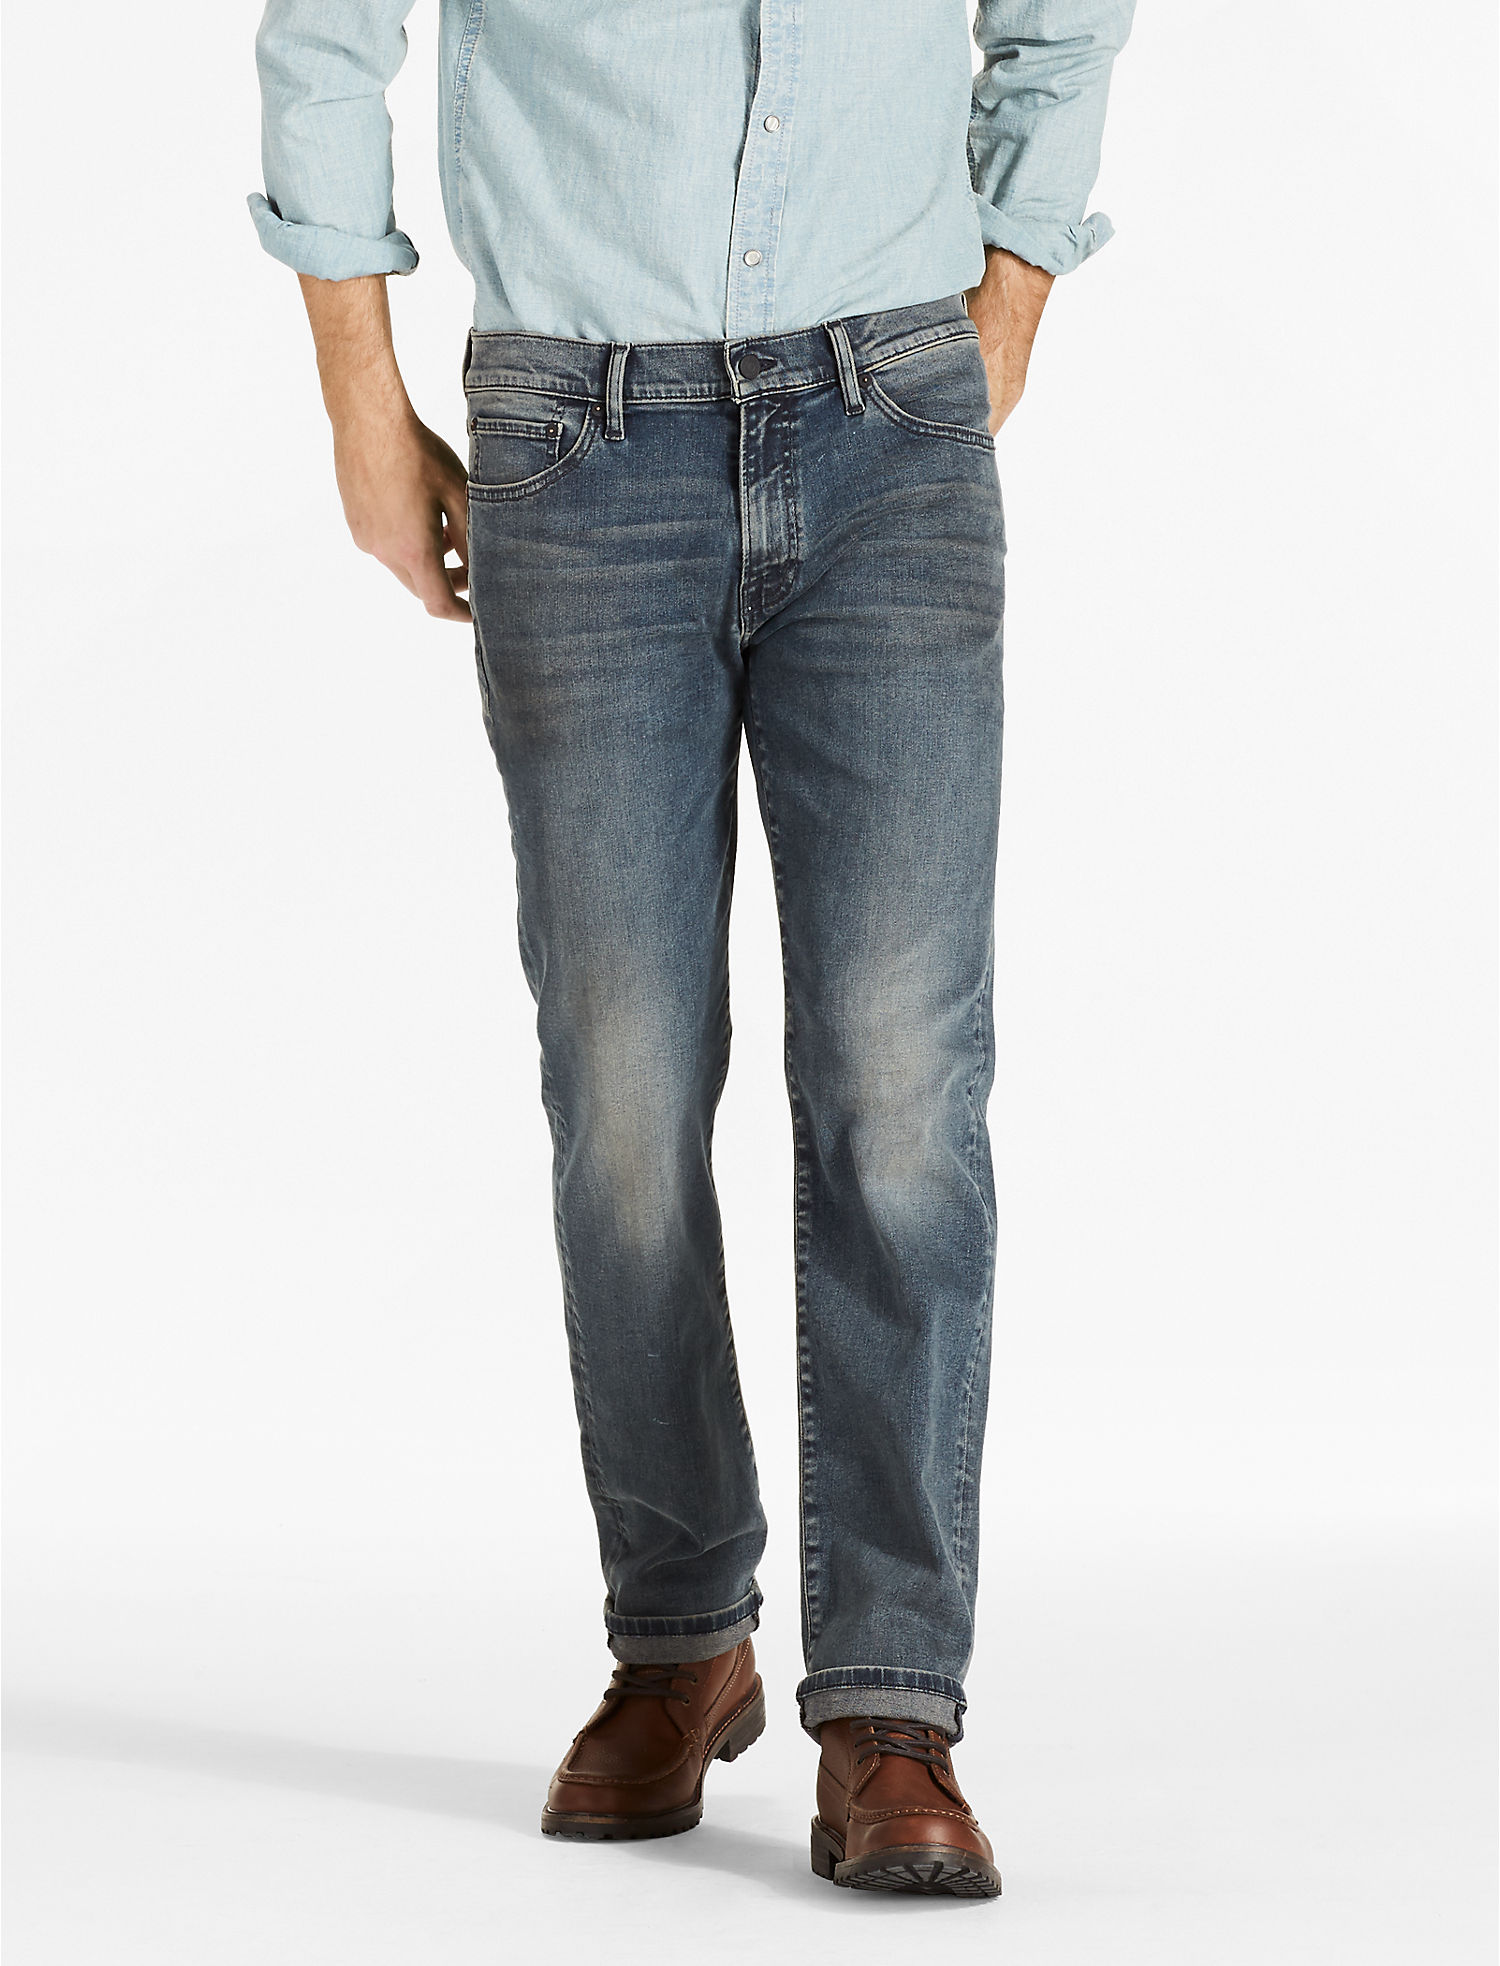 Mens jeans design legends jeans - Lucky 221 Original Straight 139 00 410 Lucky 181 Relaxed Straight Jean